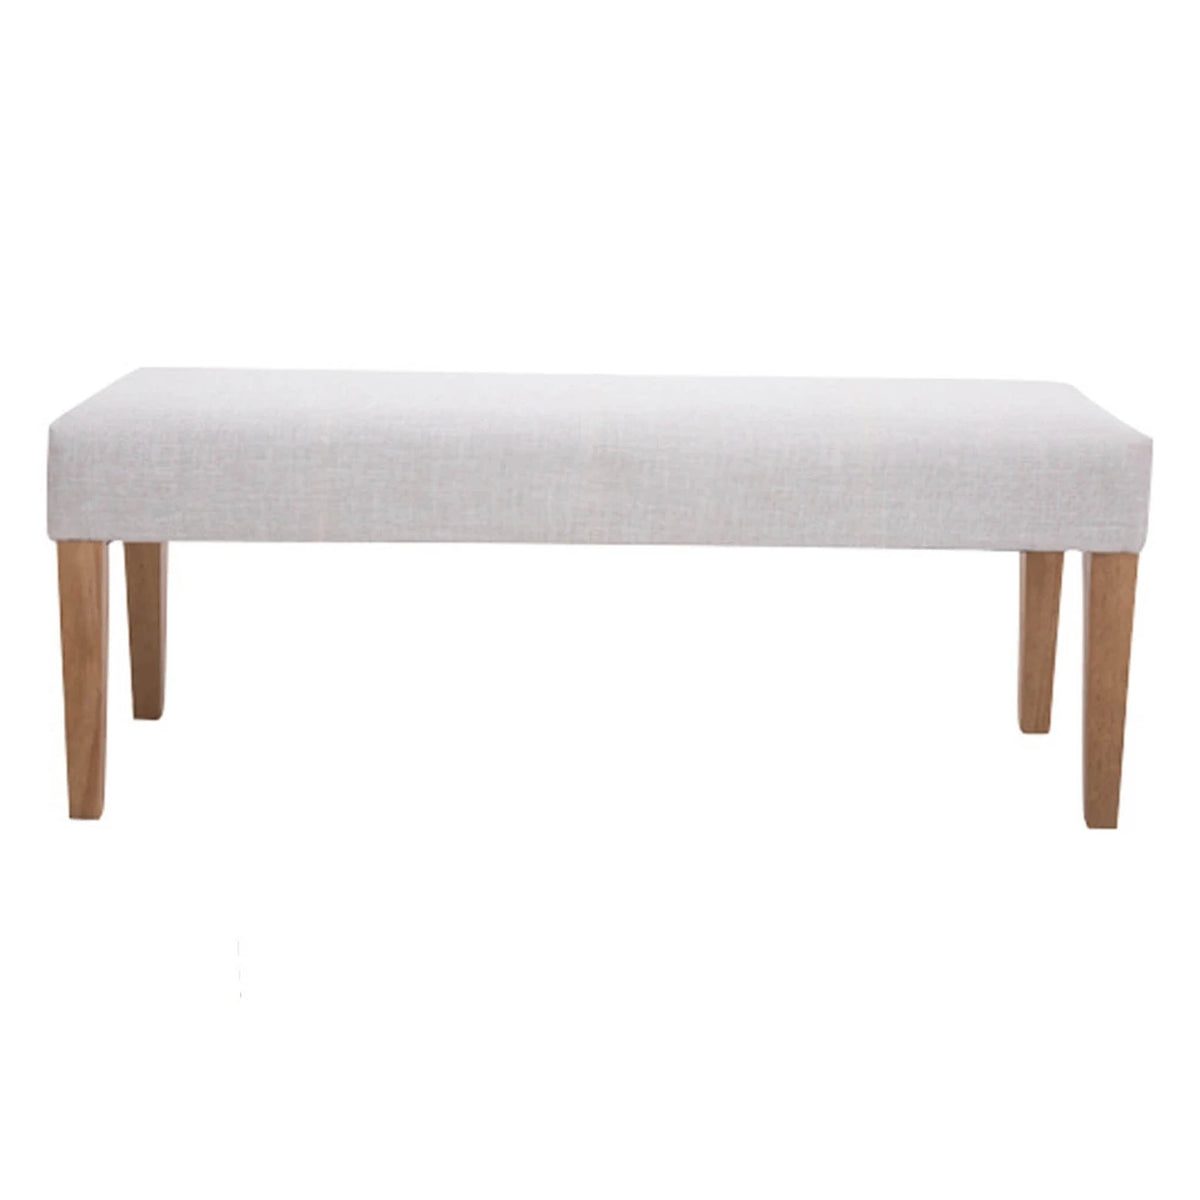 The Zara Beige Padded Bedroom Bench from Roseland Furniture